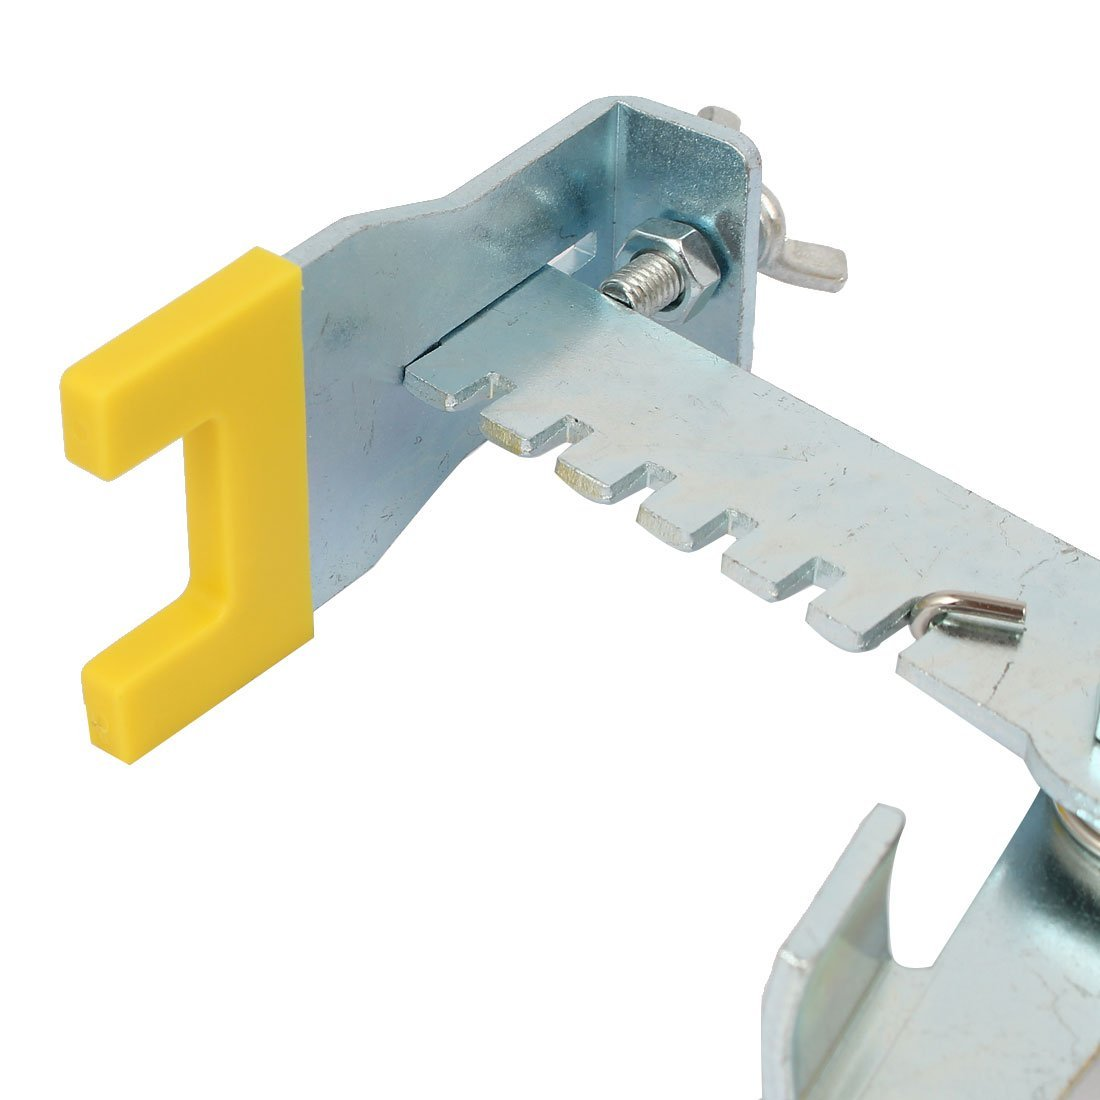 DealMux parede Piso Spacer T-Lock Alicate Tile Nivelamento Hand Tool Sistema - - Amazon.com